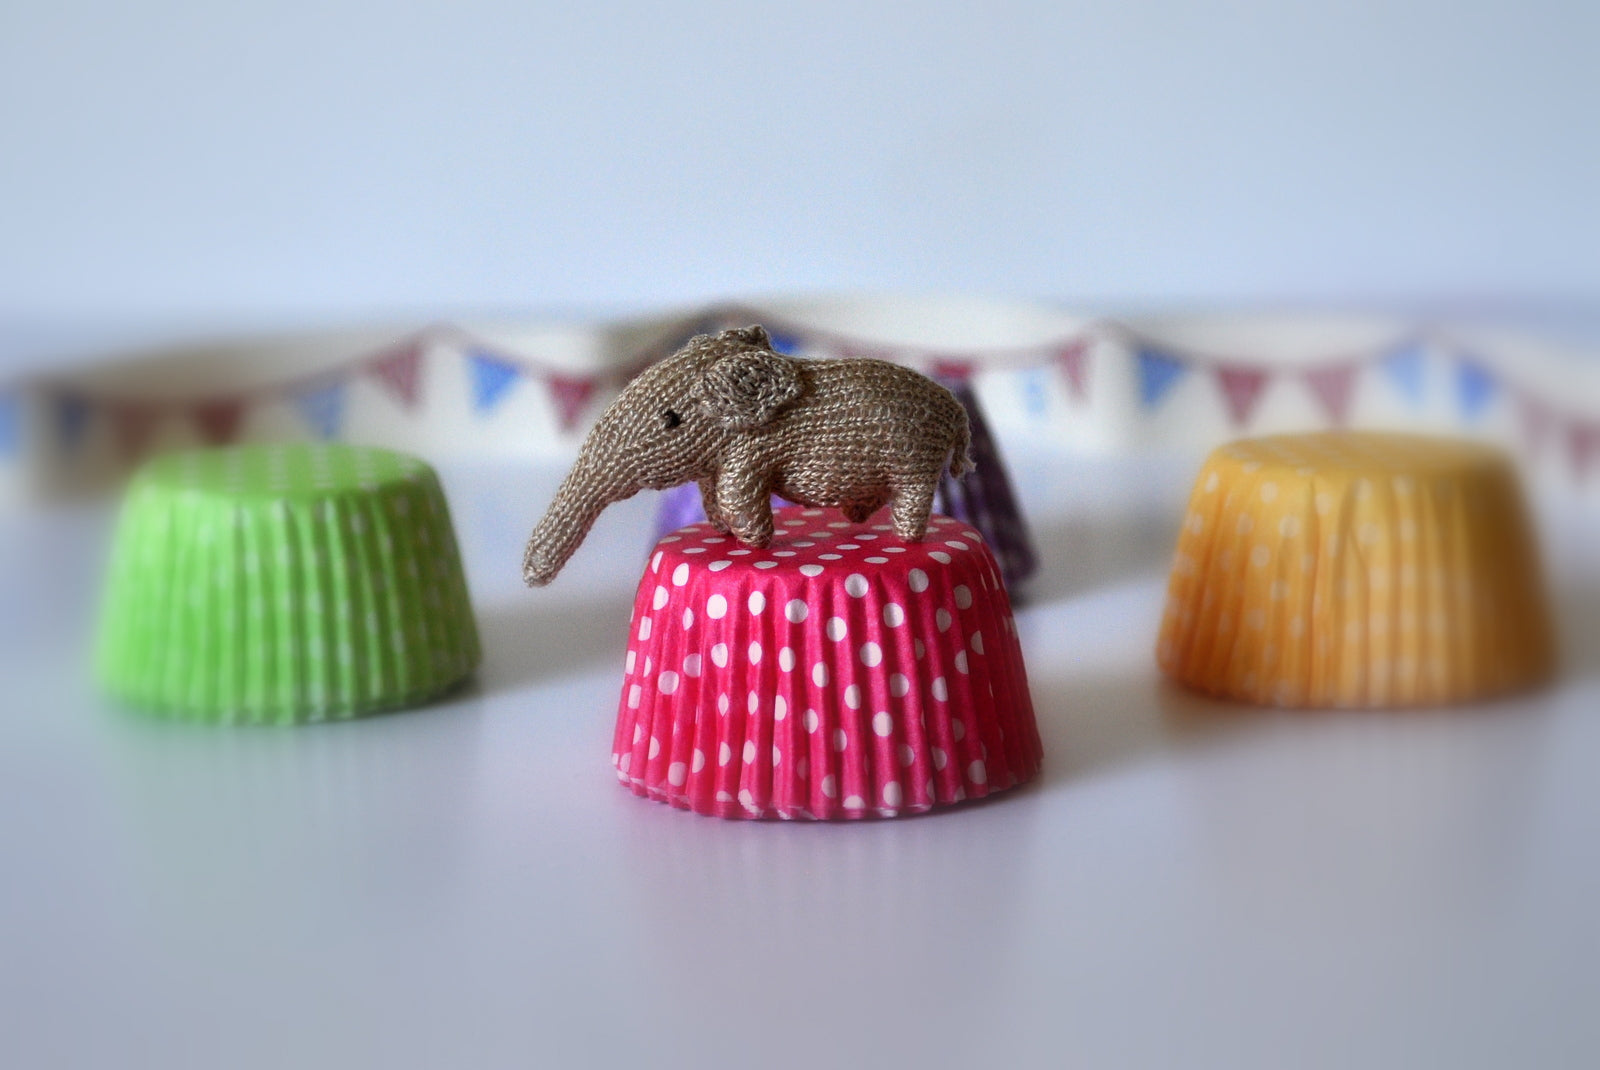 Circus Elephant Soft Toy #2 by Jenny Tomkins